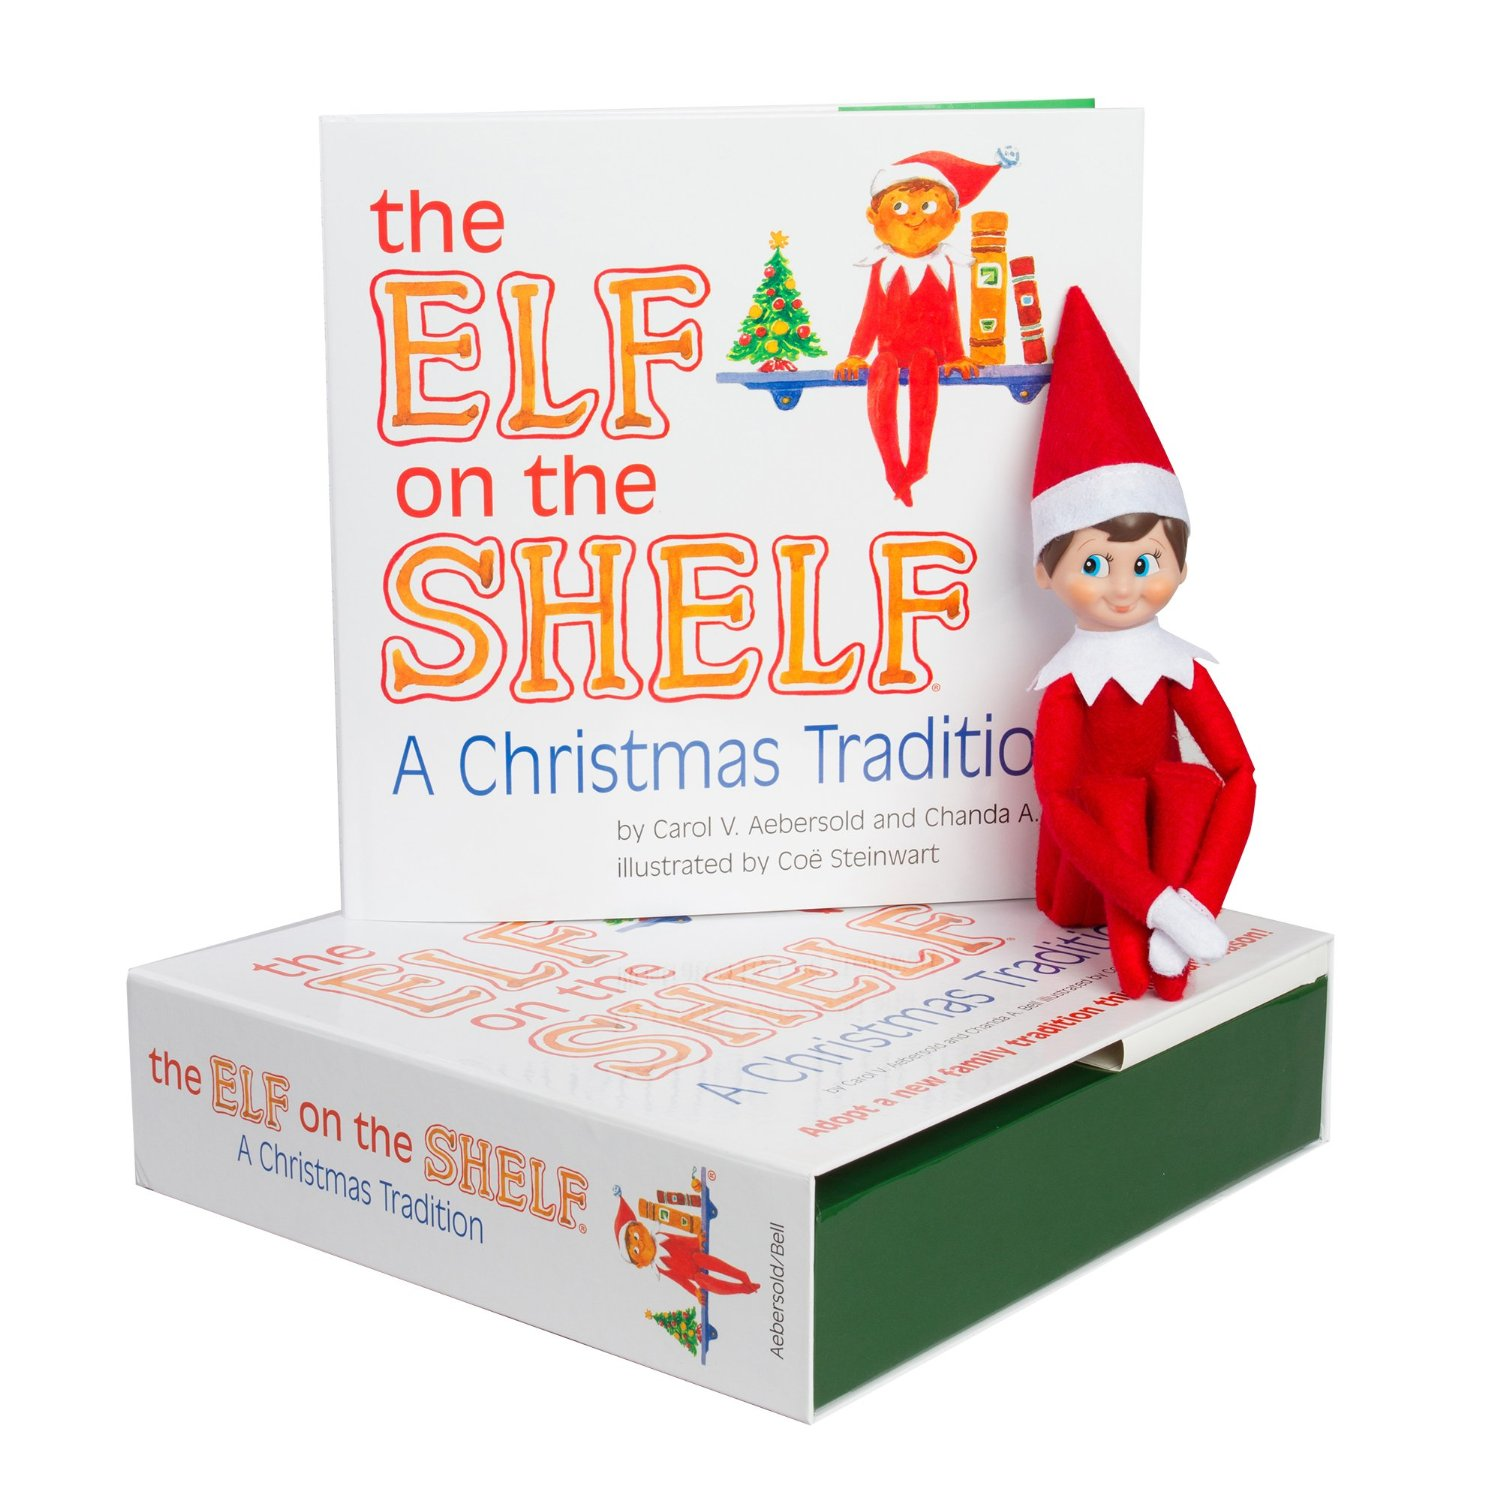 Barnes & Noble: Elf on the Shelf Just $23.96 - The Coupon Challenge